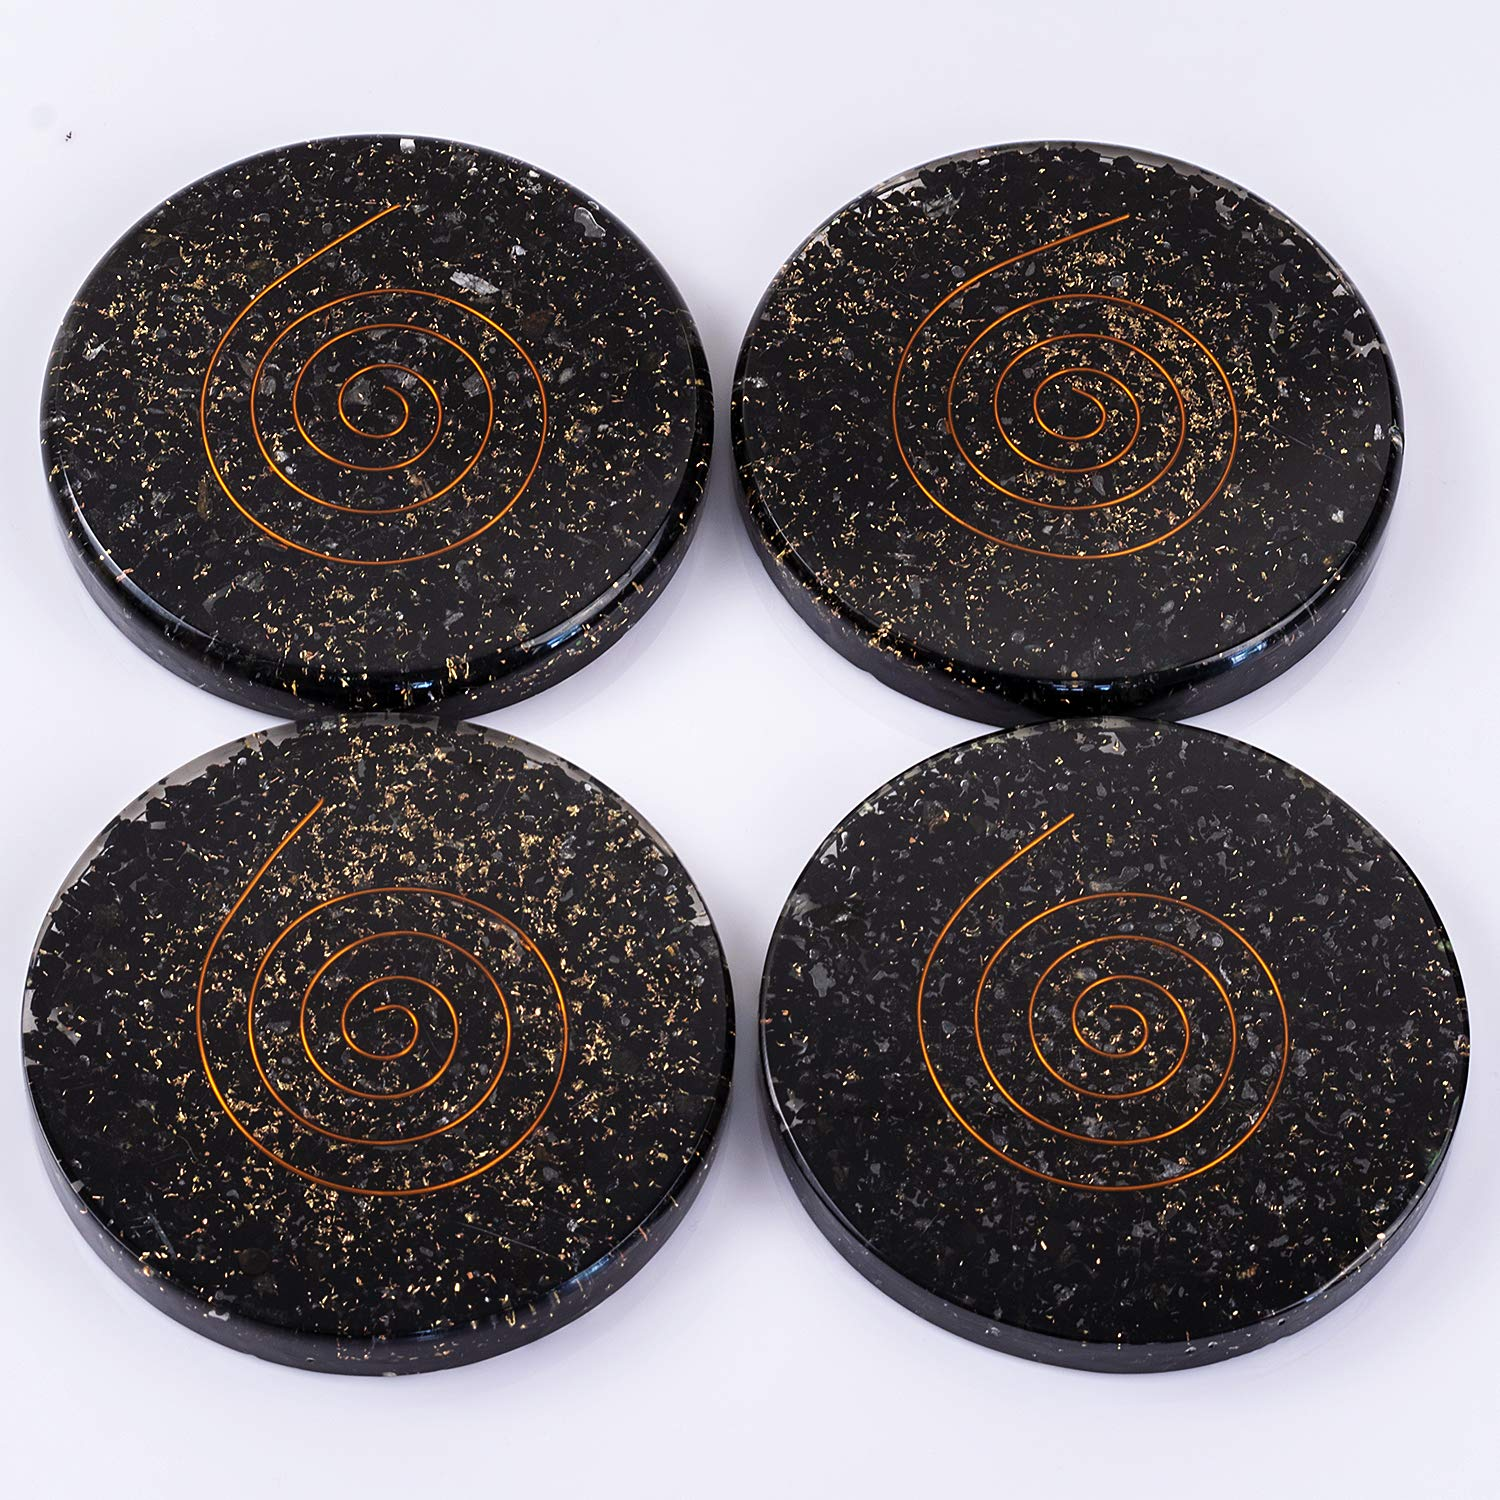 Black Tourmaline Orgone Chakra Healing Handmade Coasters for Drinks Disperses Negative Energy - Orgone EMF Protection | Crystal Coasters Set of 4 by Divine Magic